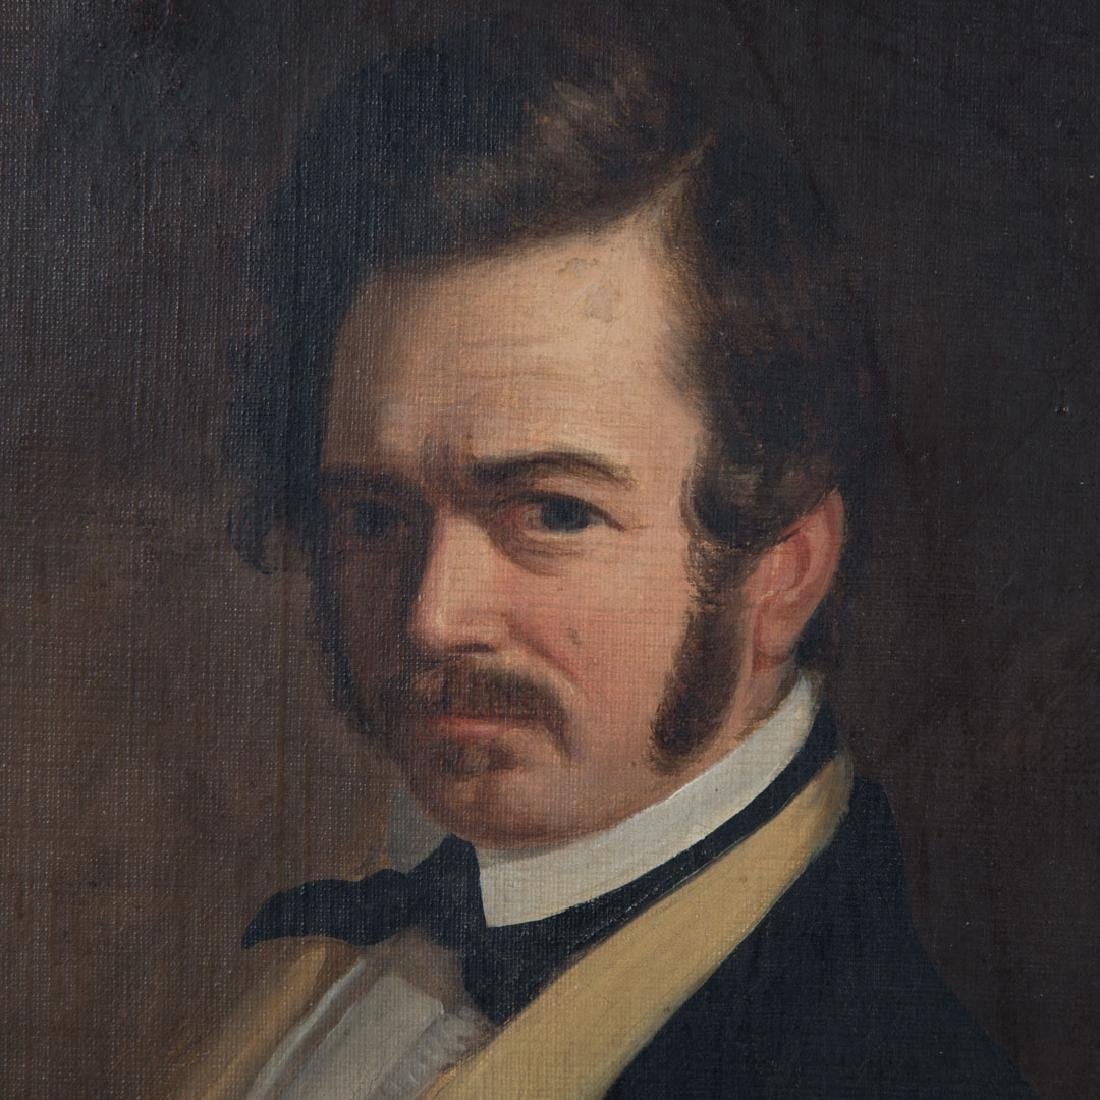 Attr. to William Hepburn. Self Portrait, oil - 3